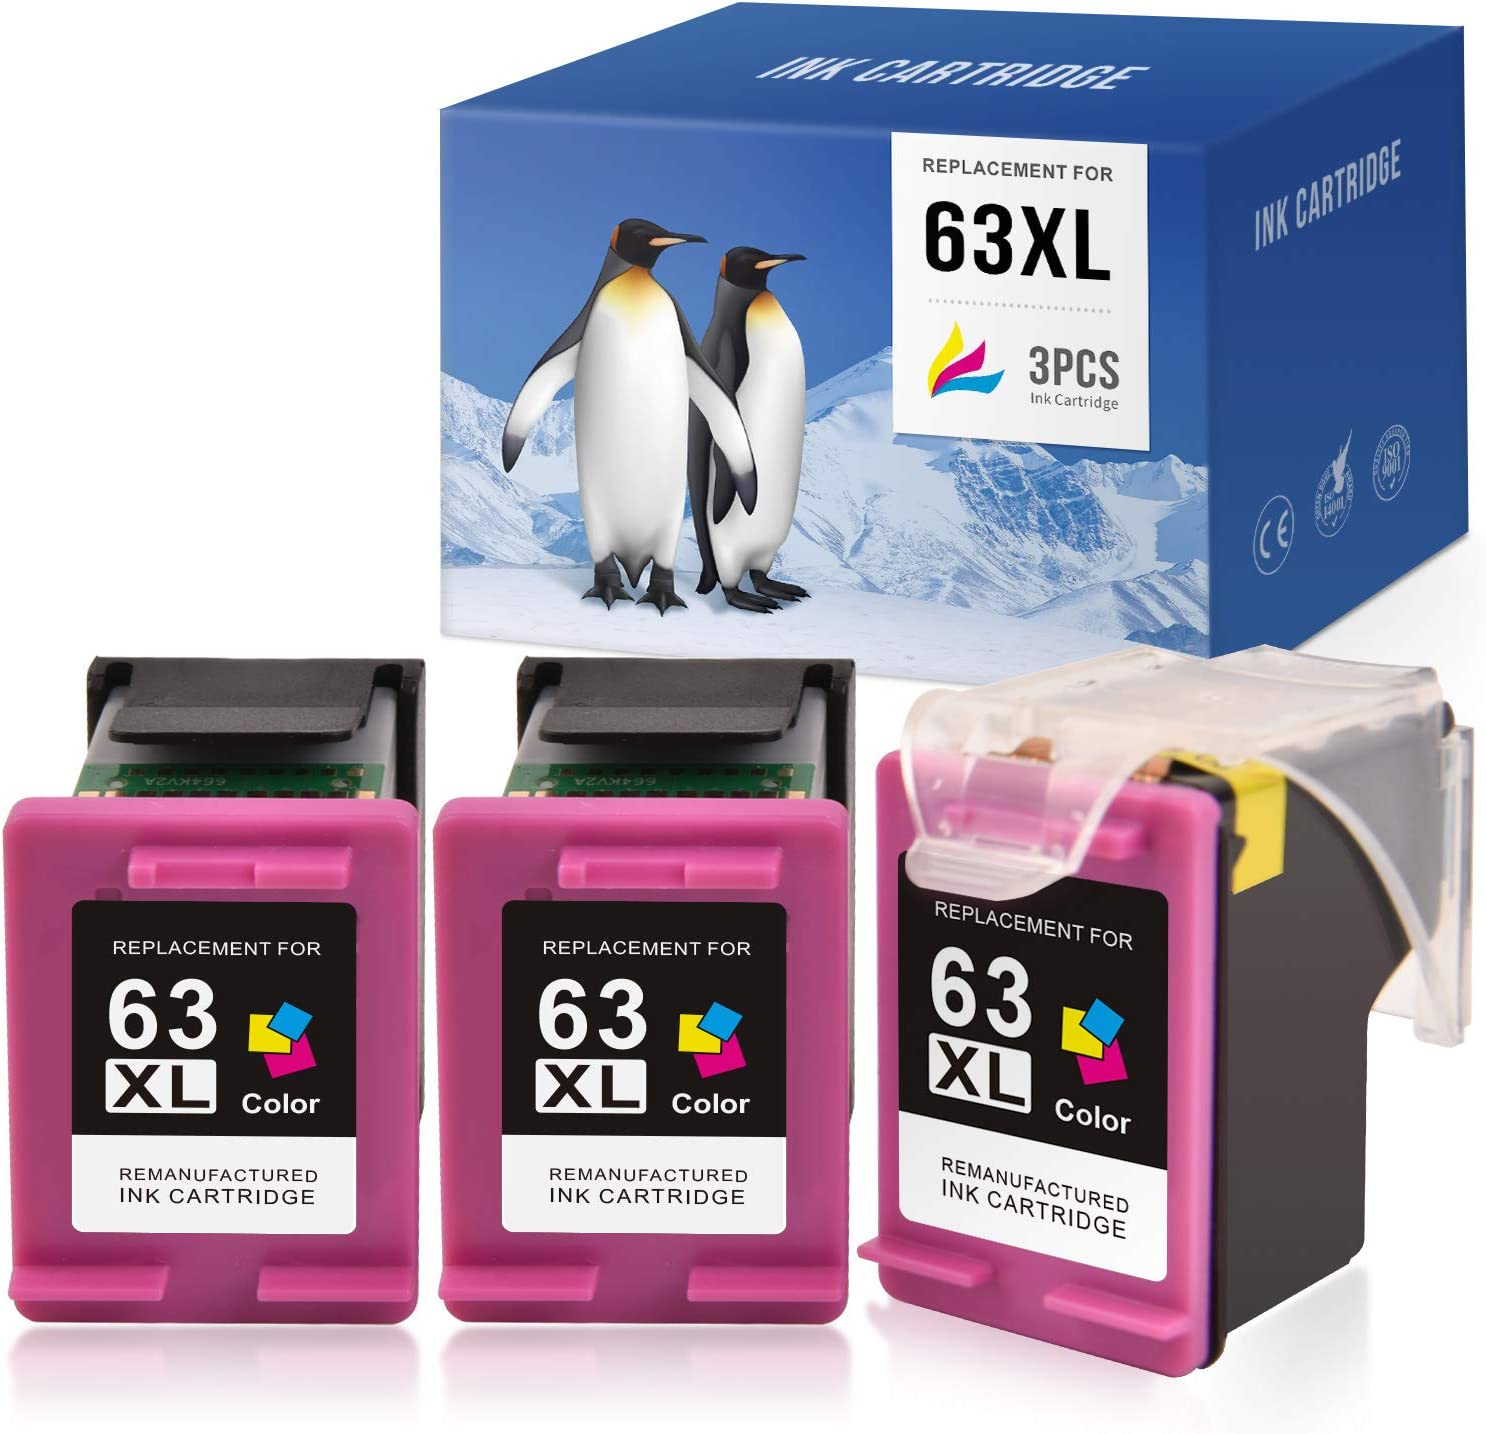 SAILNER Remanufactured Ink Cartridge Replacement for HP 63 63XL 63 XL Eco-Saver use with OfficeJet 3830 5255 5258 4650 4655 Envy 4520 4512 DeskJet 1112 1110 3632 3630 (Tri-Color, 1+2 Pack)